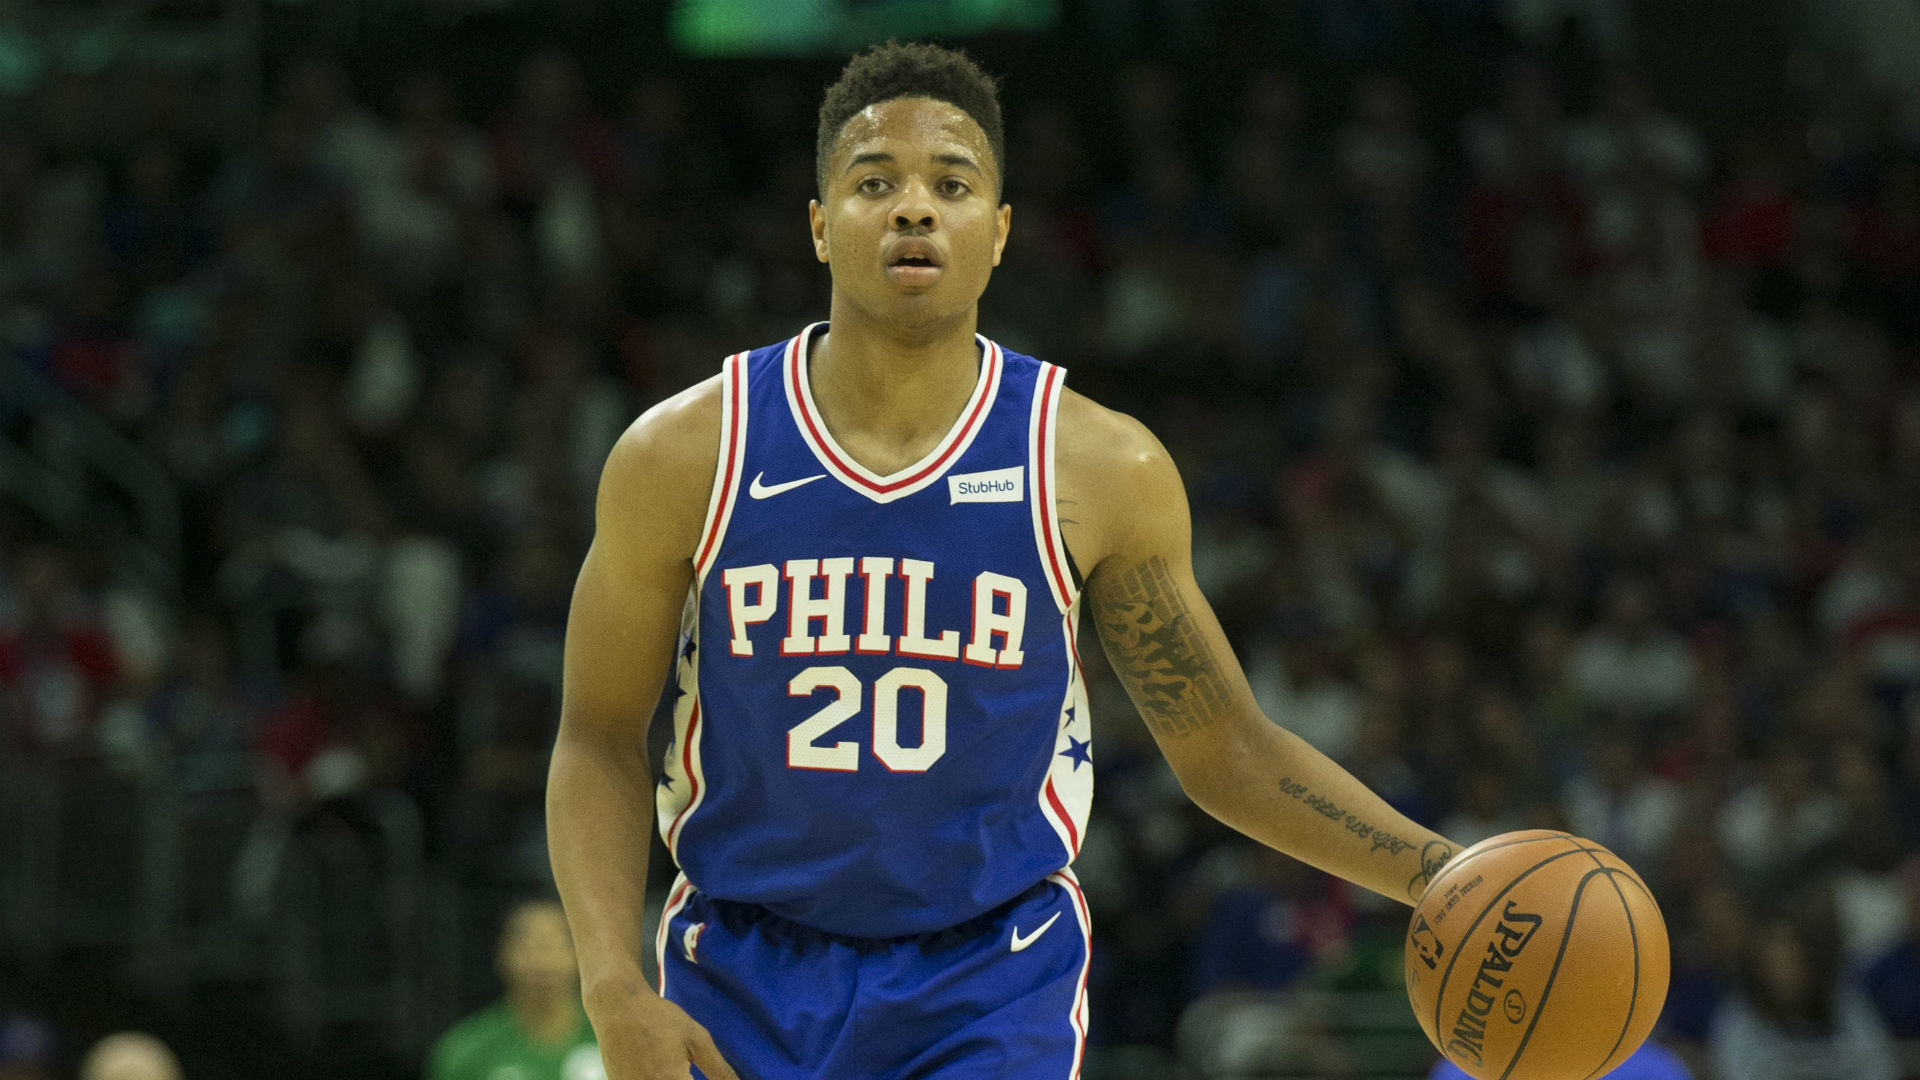 76ers guard Markelle Fultz 'completely different, vastly improved' player, report says